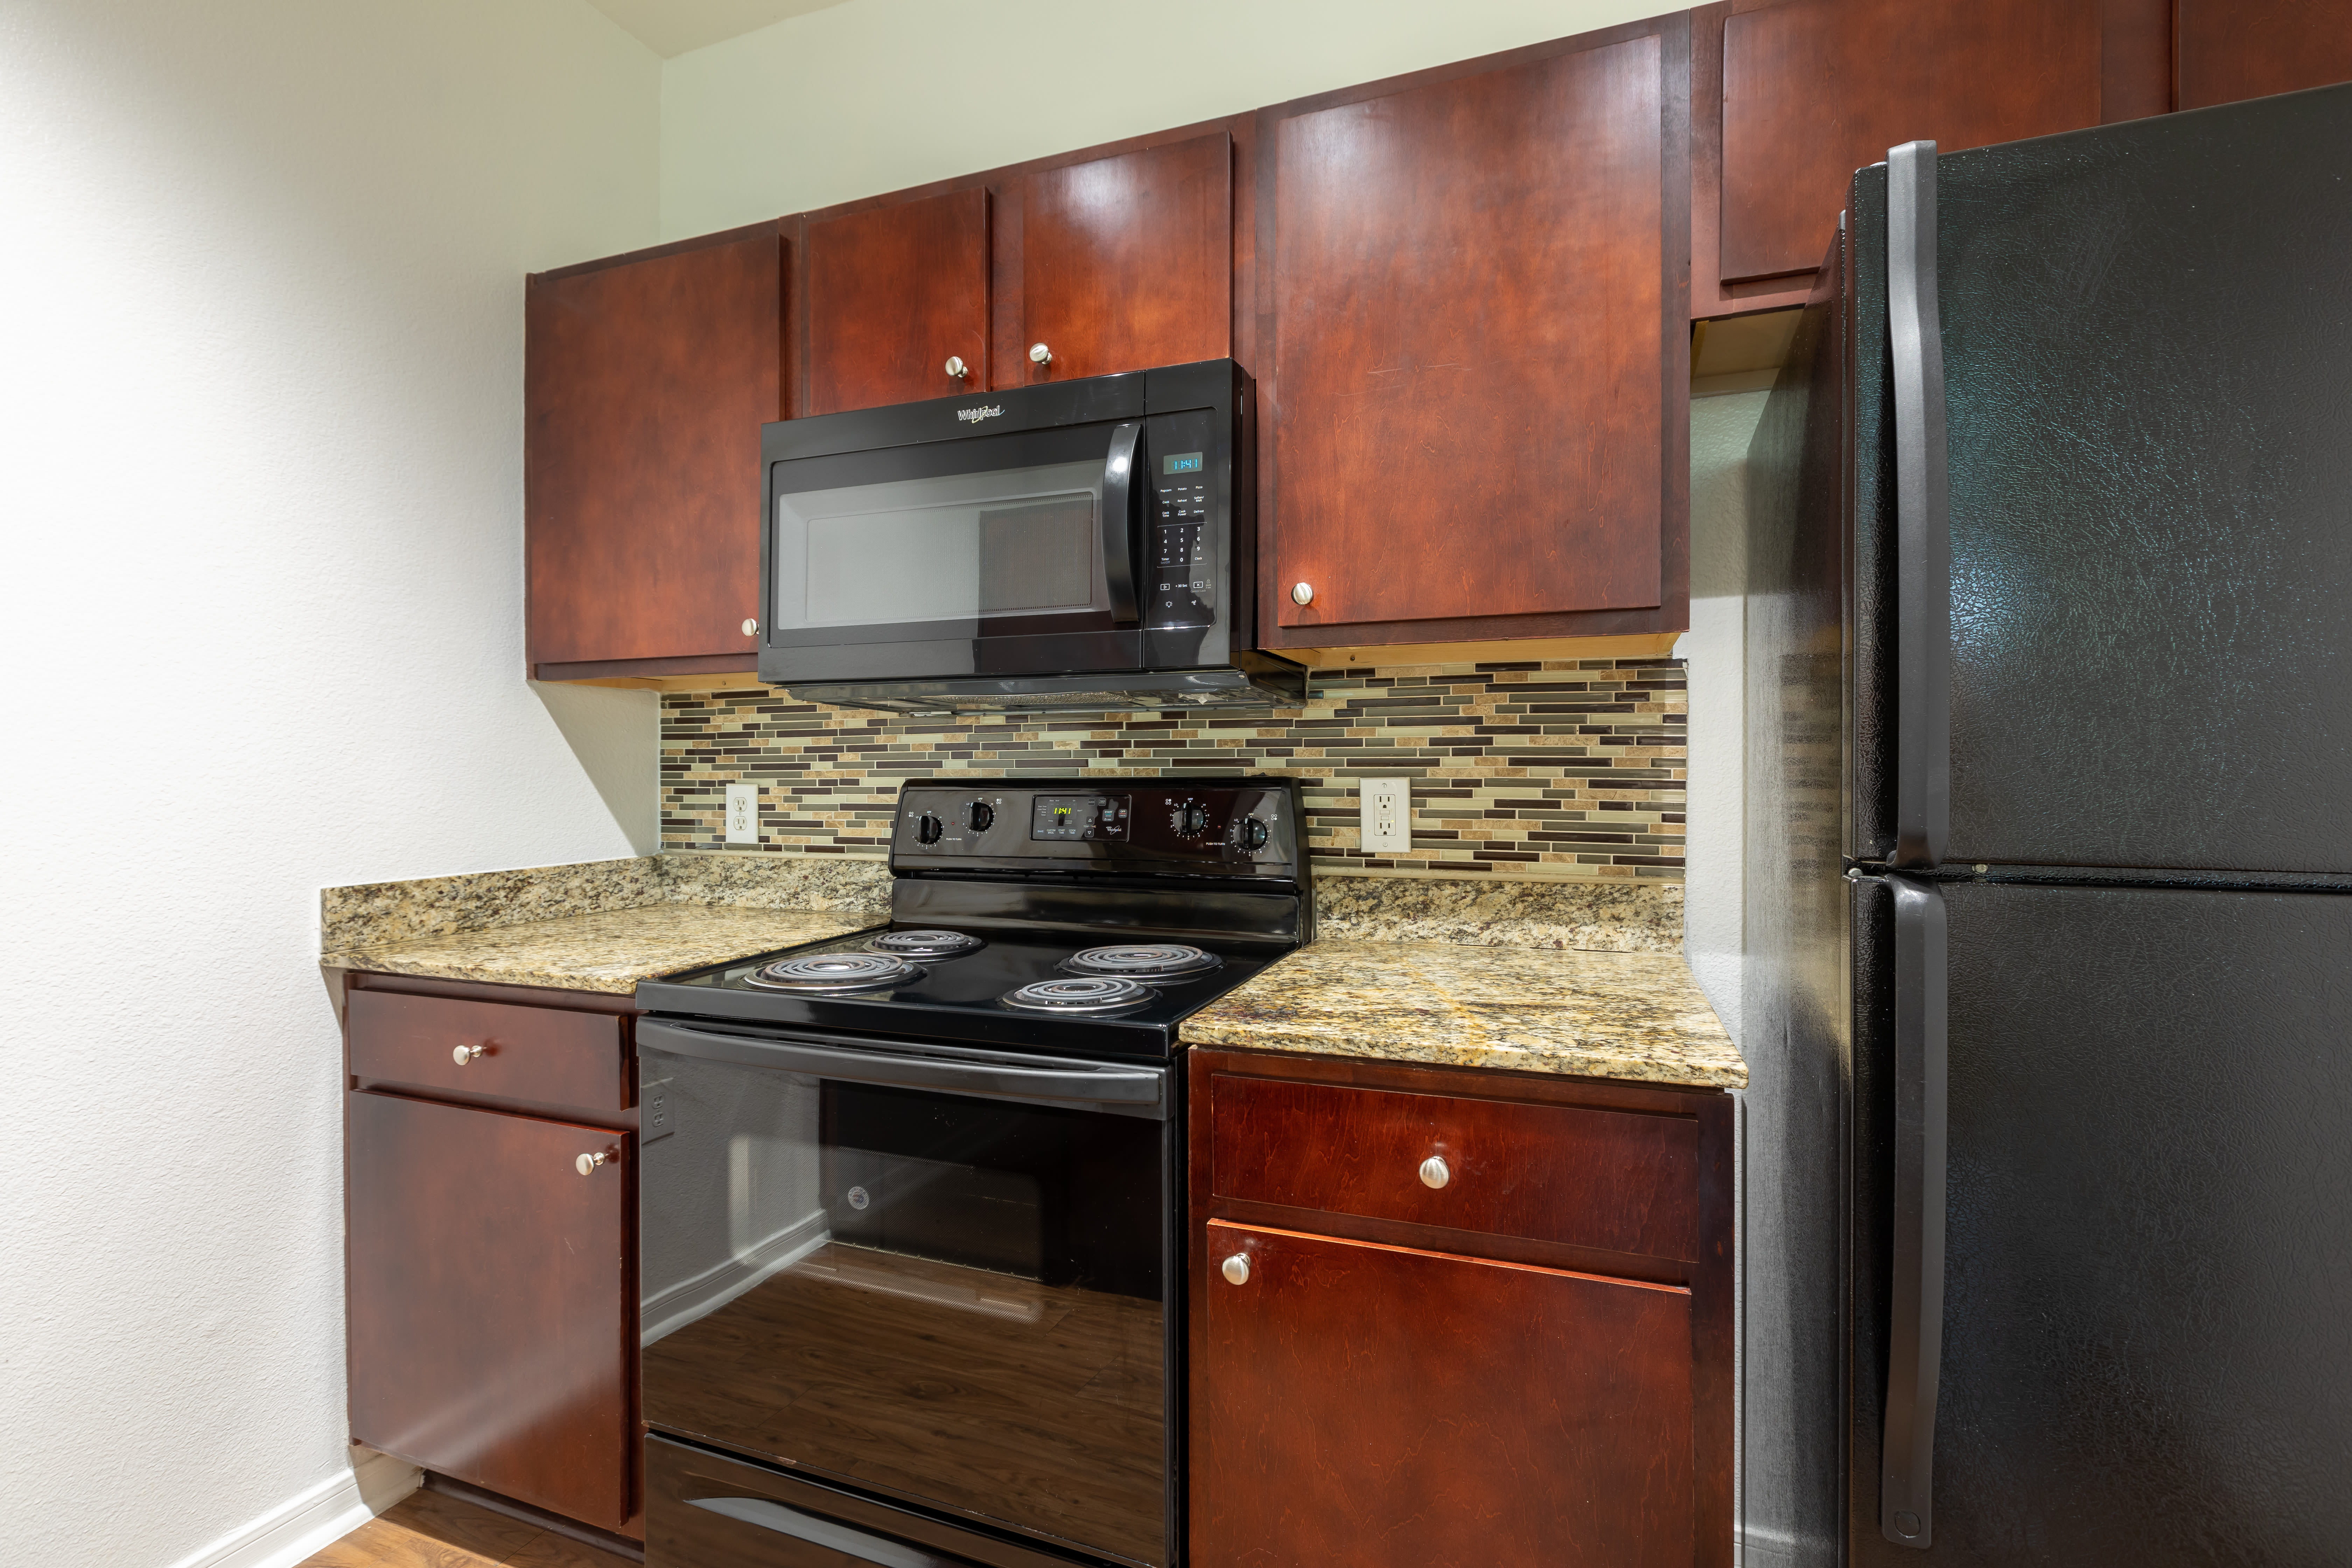 An update kitchen at Stone Creek at The Woodlands in The Woodlands, Texas